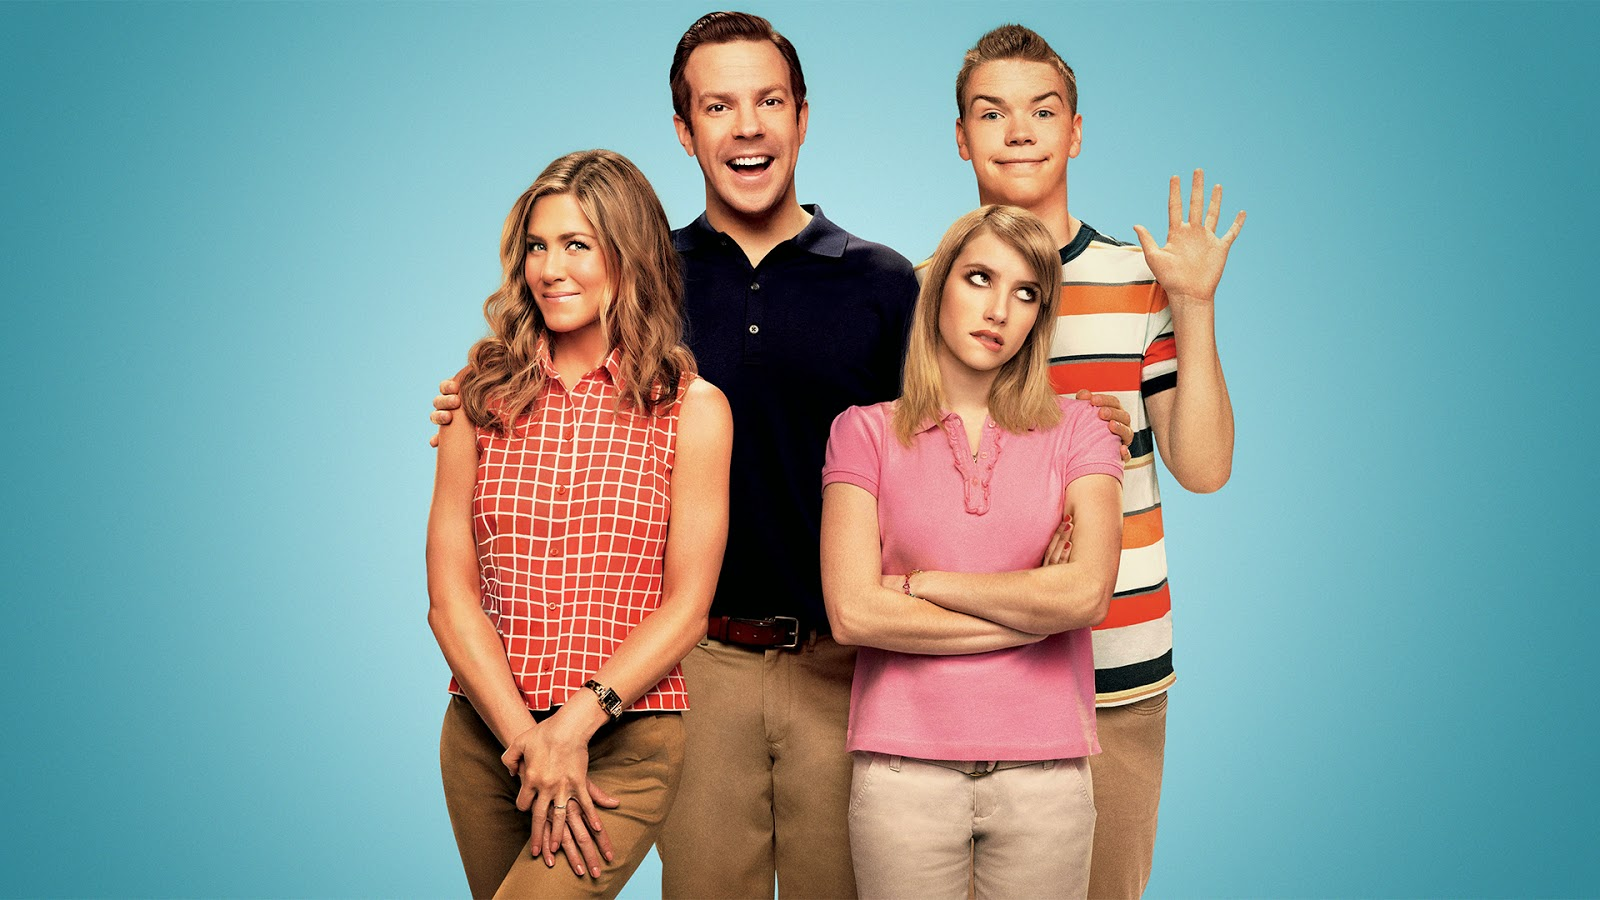 http://werethemillers.warnerbros.com/#home